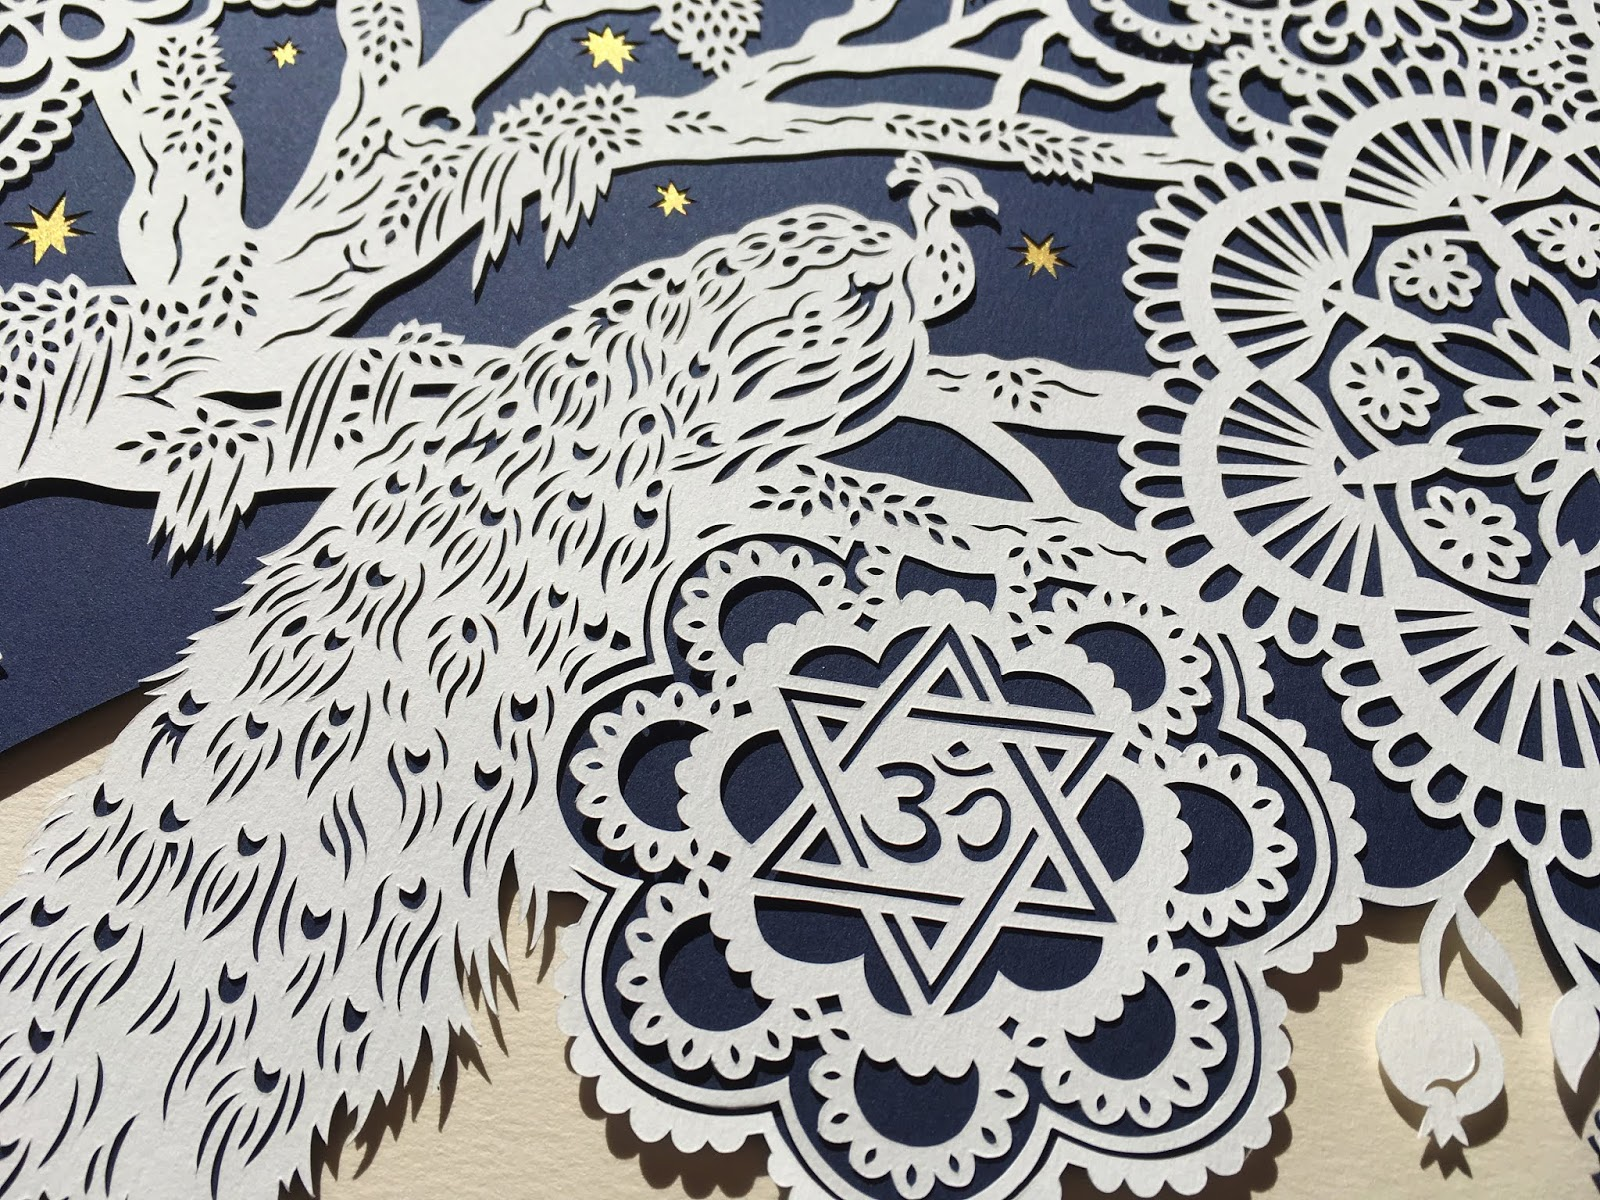 handmade papercut ketubah for interfaith wedding by Woodland Papercuts